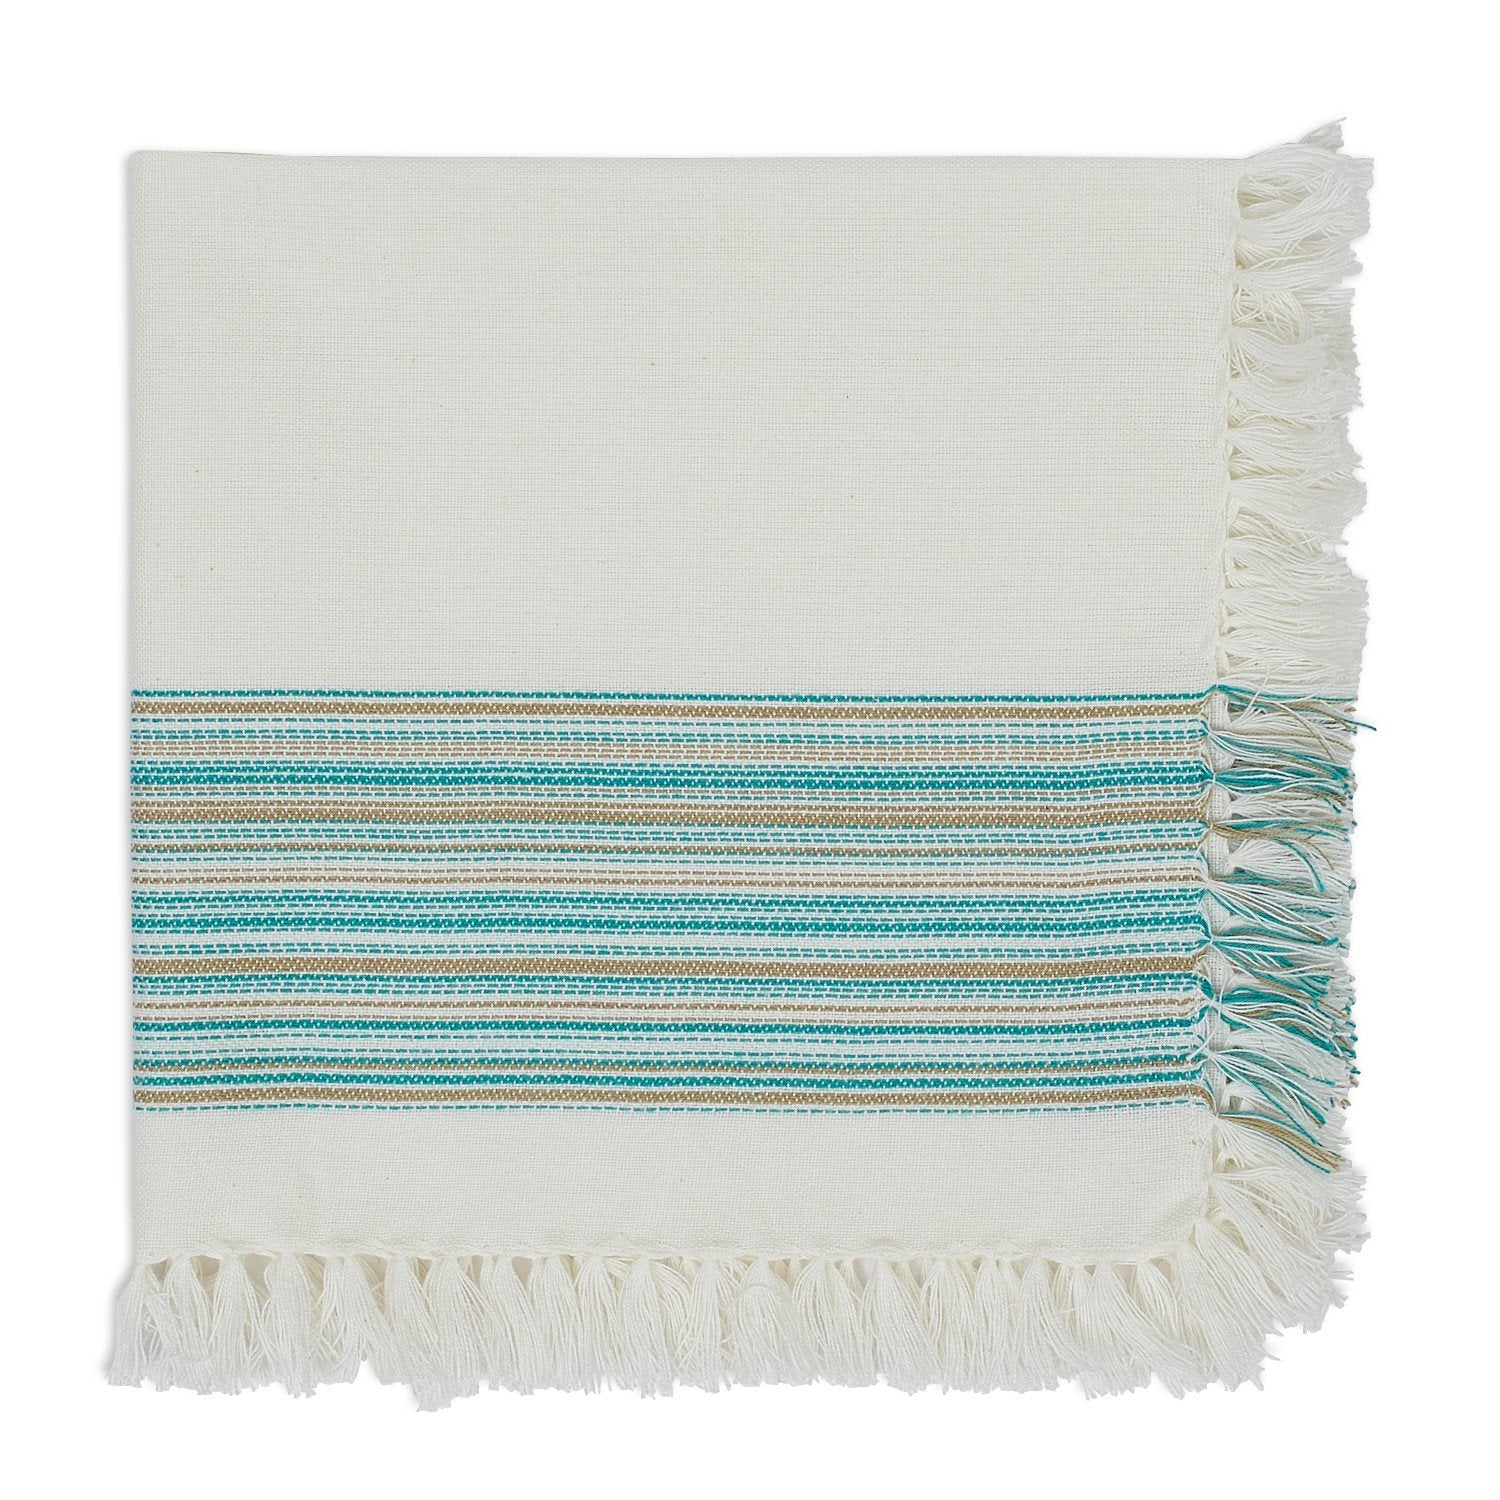 Wholesale Teal Blue Fringe Napkin – DII Design Imports